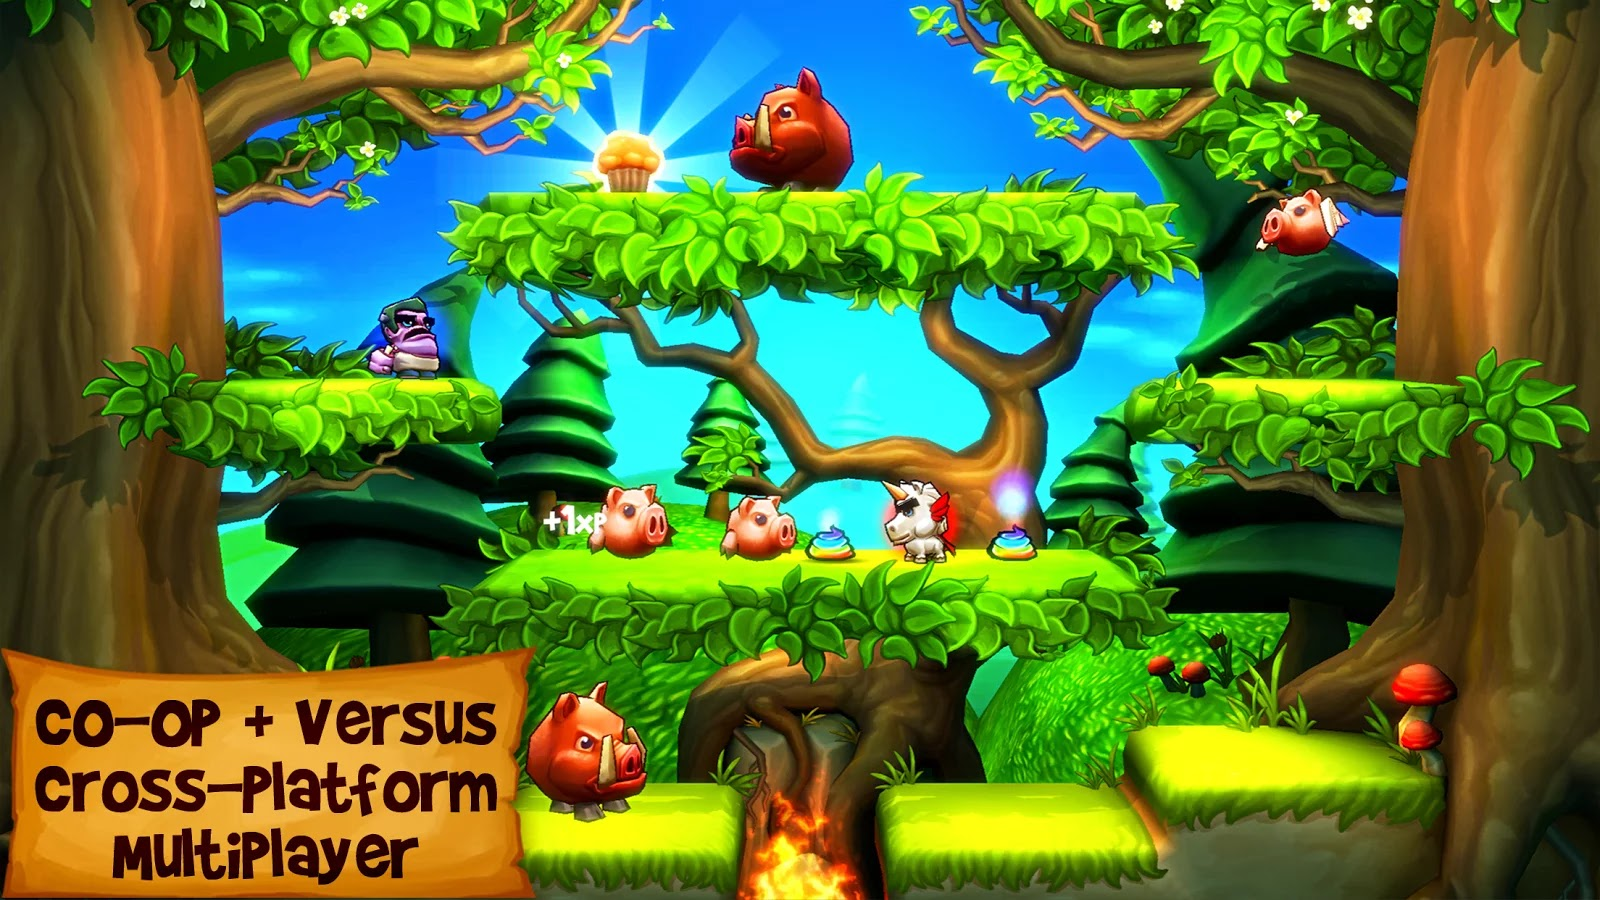 Tải Game Muffin Hiệp sĩ Android